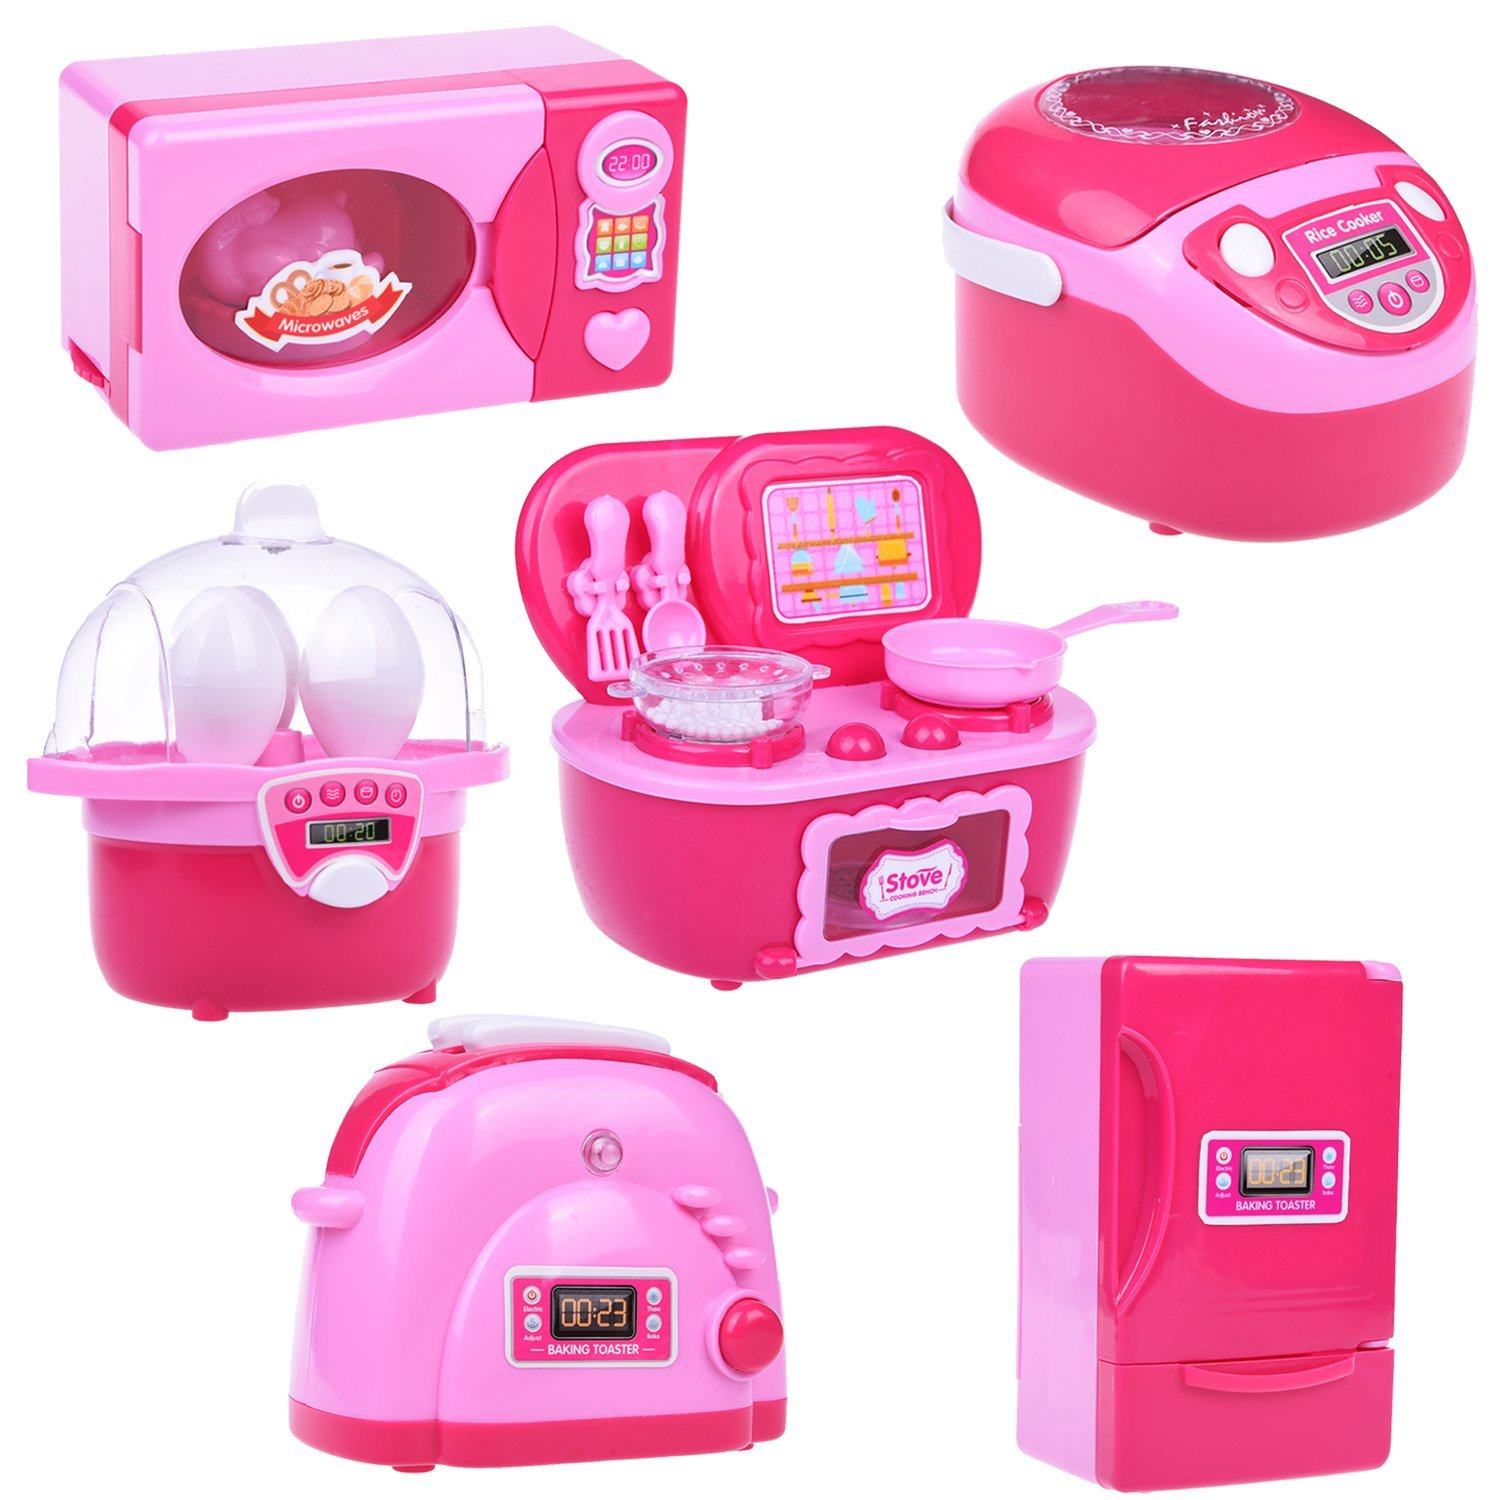 Mini Kitchen Play Set Home Appliances Refrigerator Stove Oven Microwave  Toaster Steam Egg Timer Set With